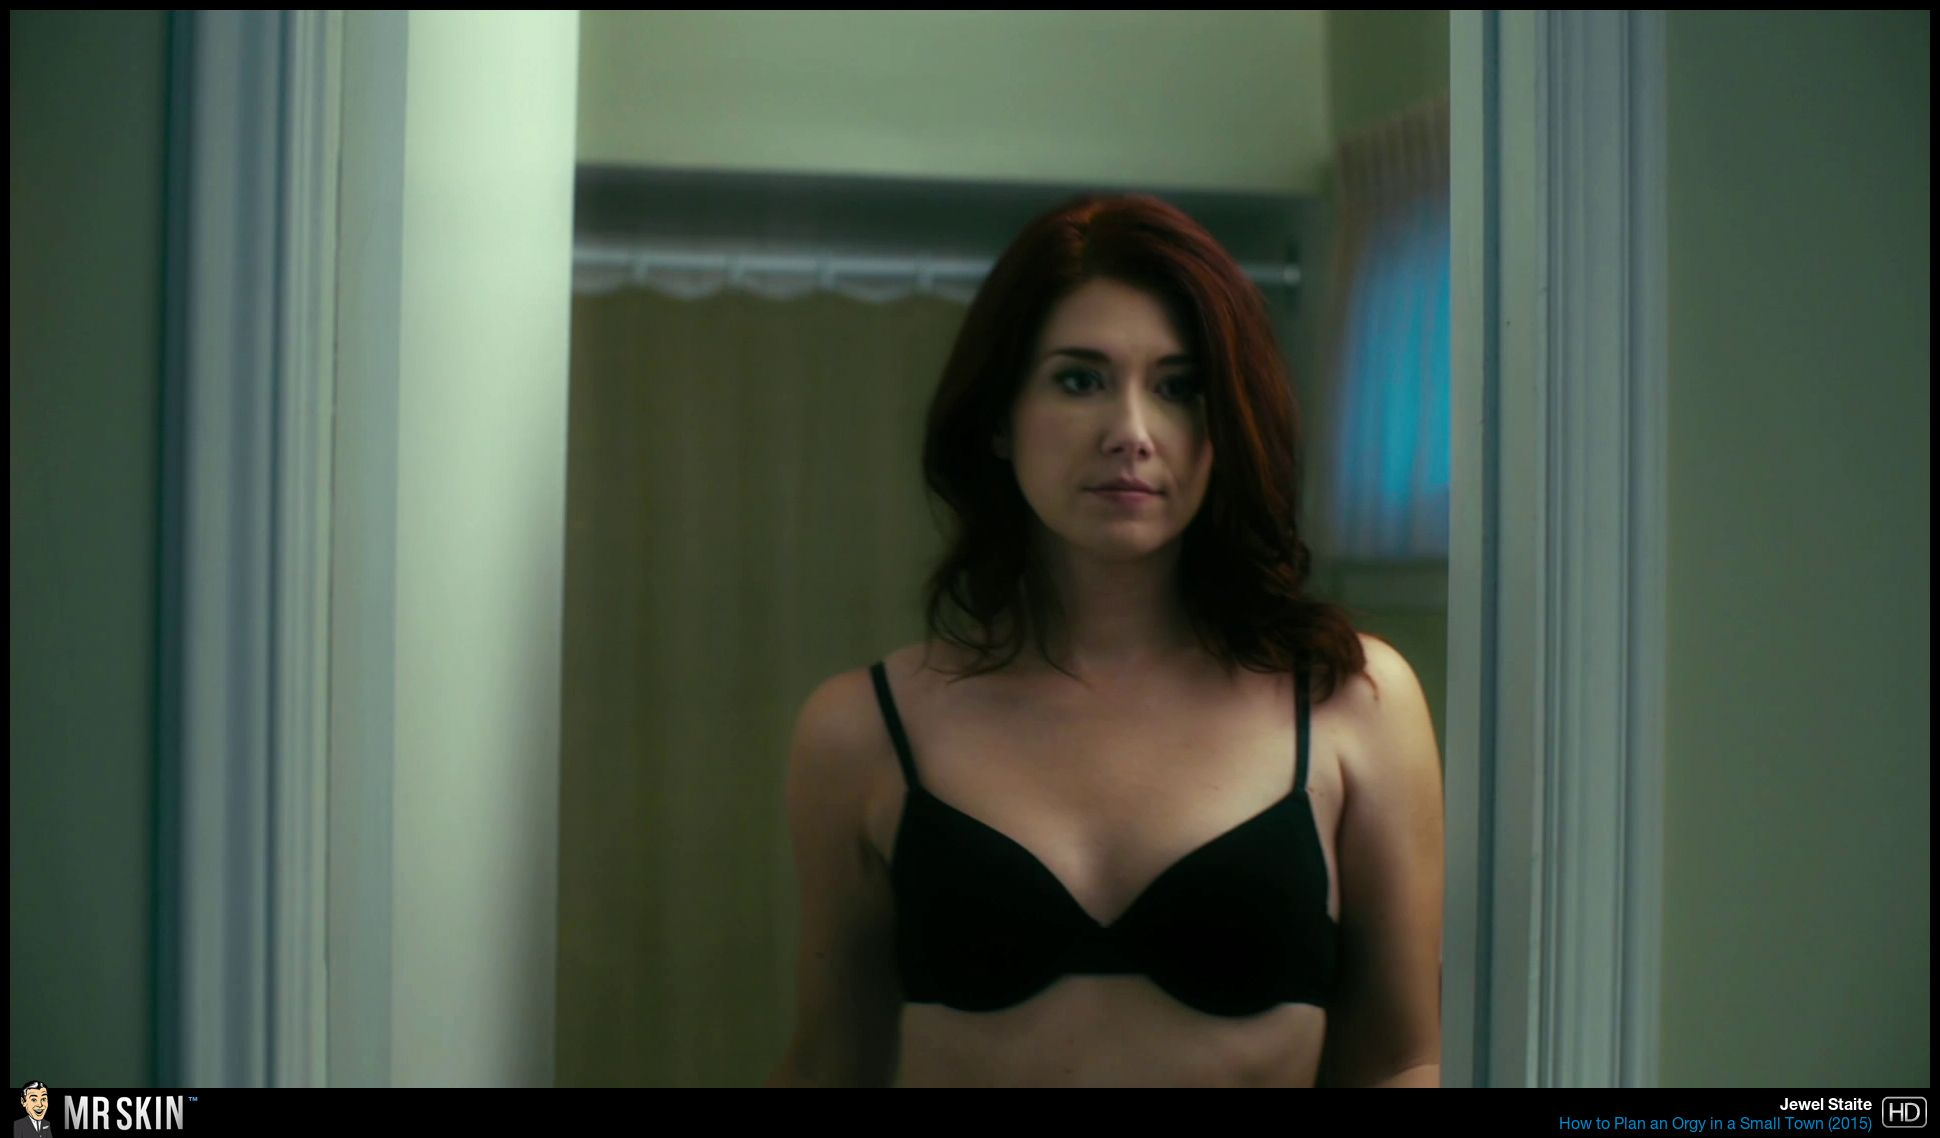 Jewel staite sex scenes